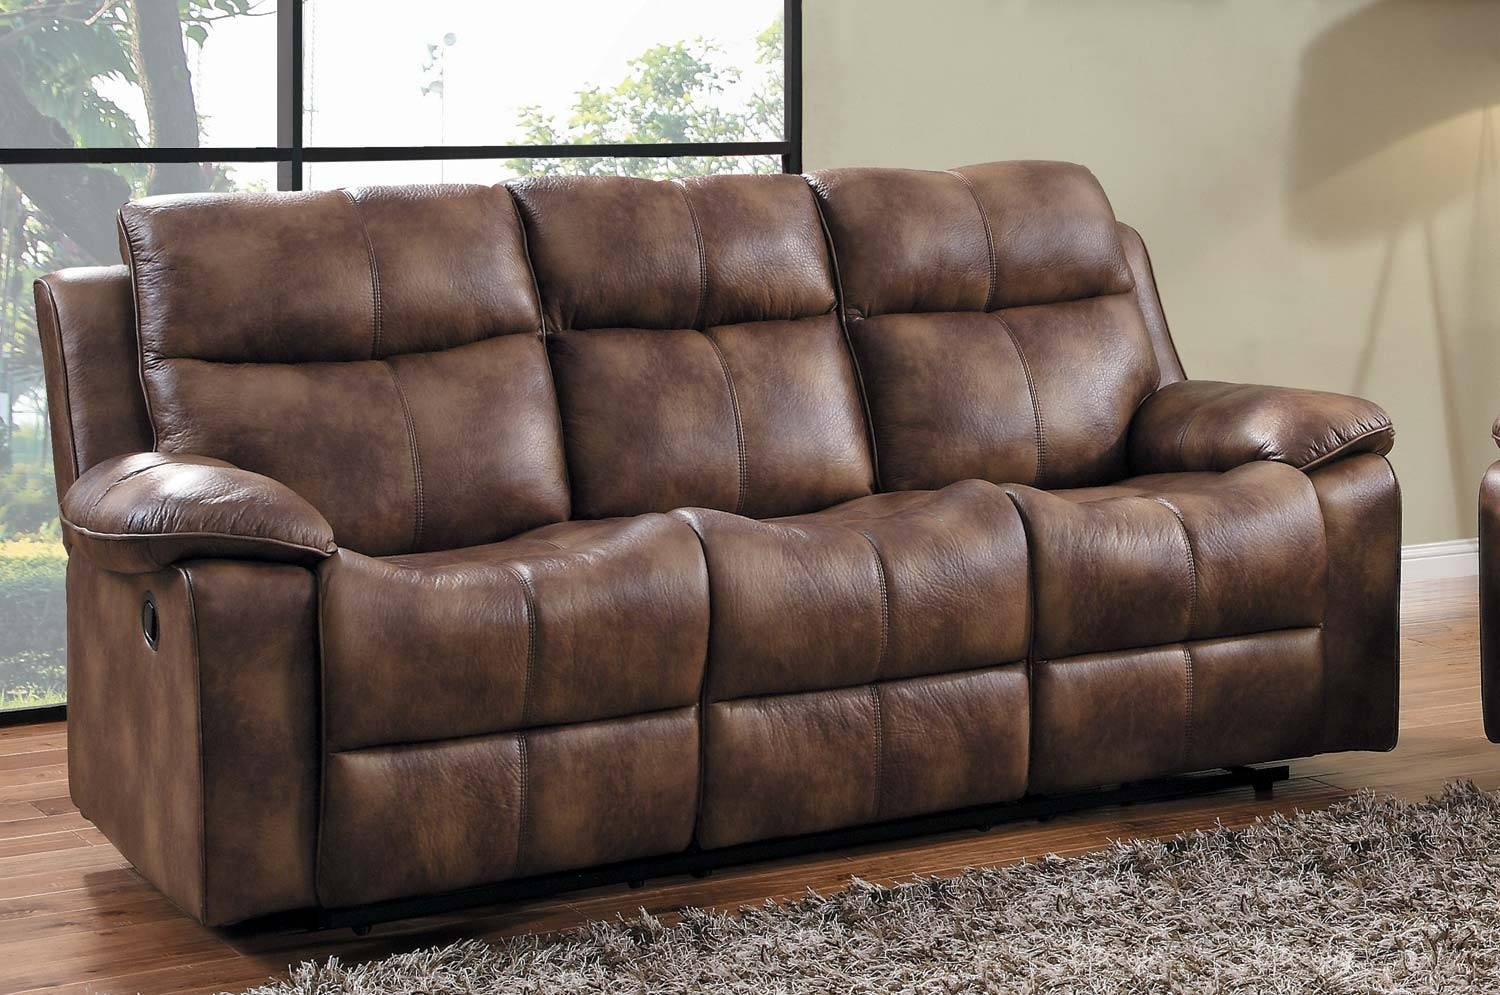 Homelegance Brooklyn Heights Double Recliner Sofa - Polished for Microsuede Sofa Beds (Image 5 of 15)